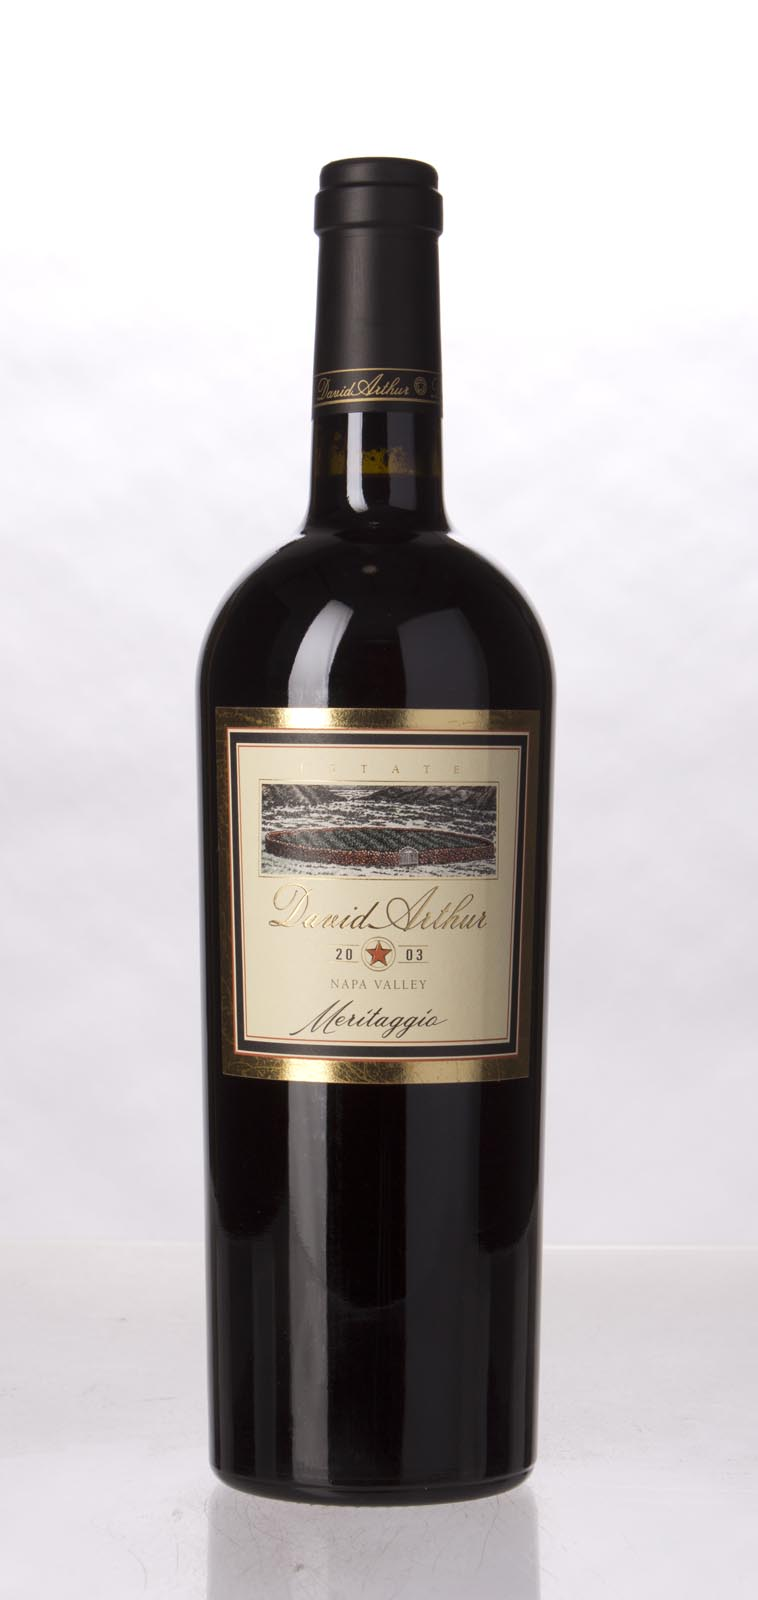 David Arthur Meritaggio 2003, 750mL () from The BPW - Merchants of rare and fine wines.